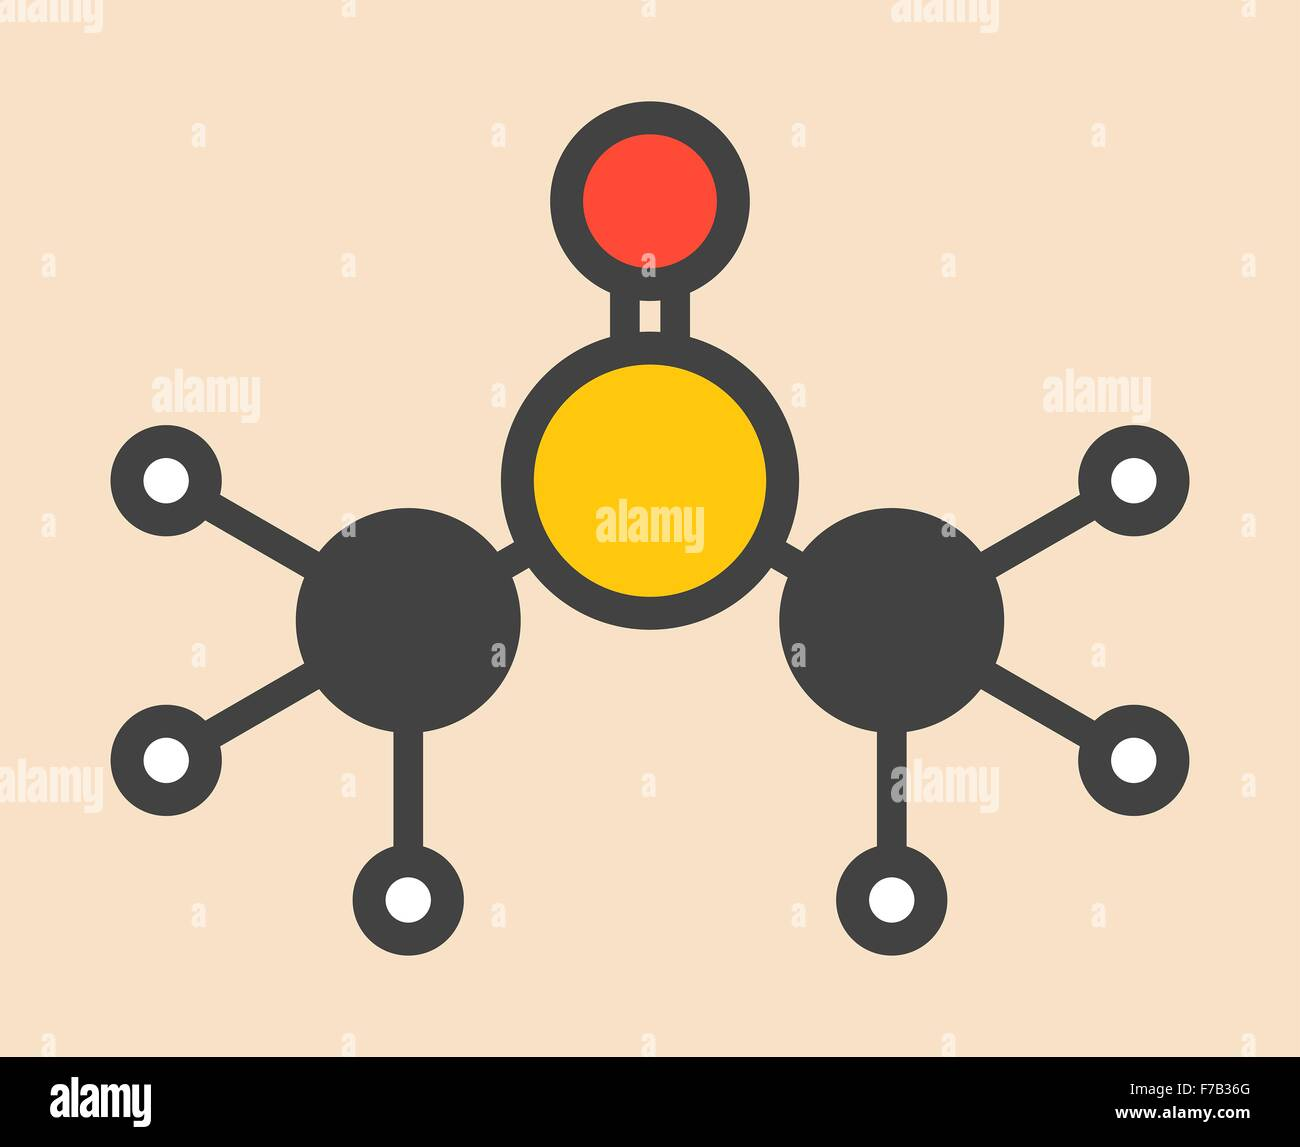 Dimethyl sulfoxide (DMSO solvent molecule). Stylized skeletal formula (chemical structure). Atoms are shown as color - Stock Image